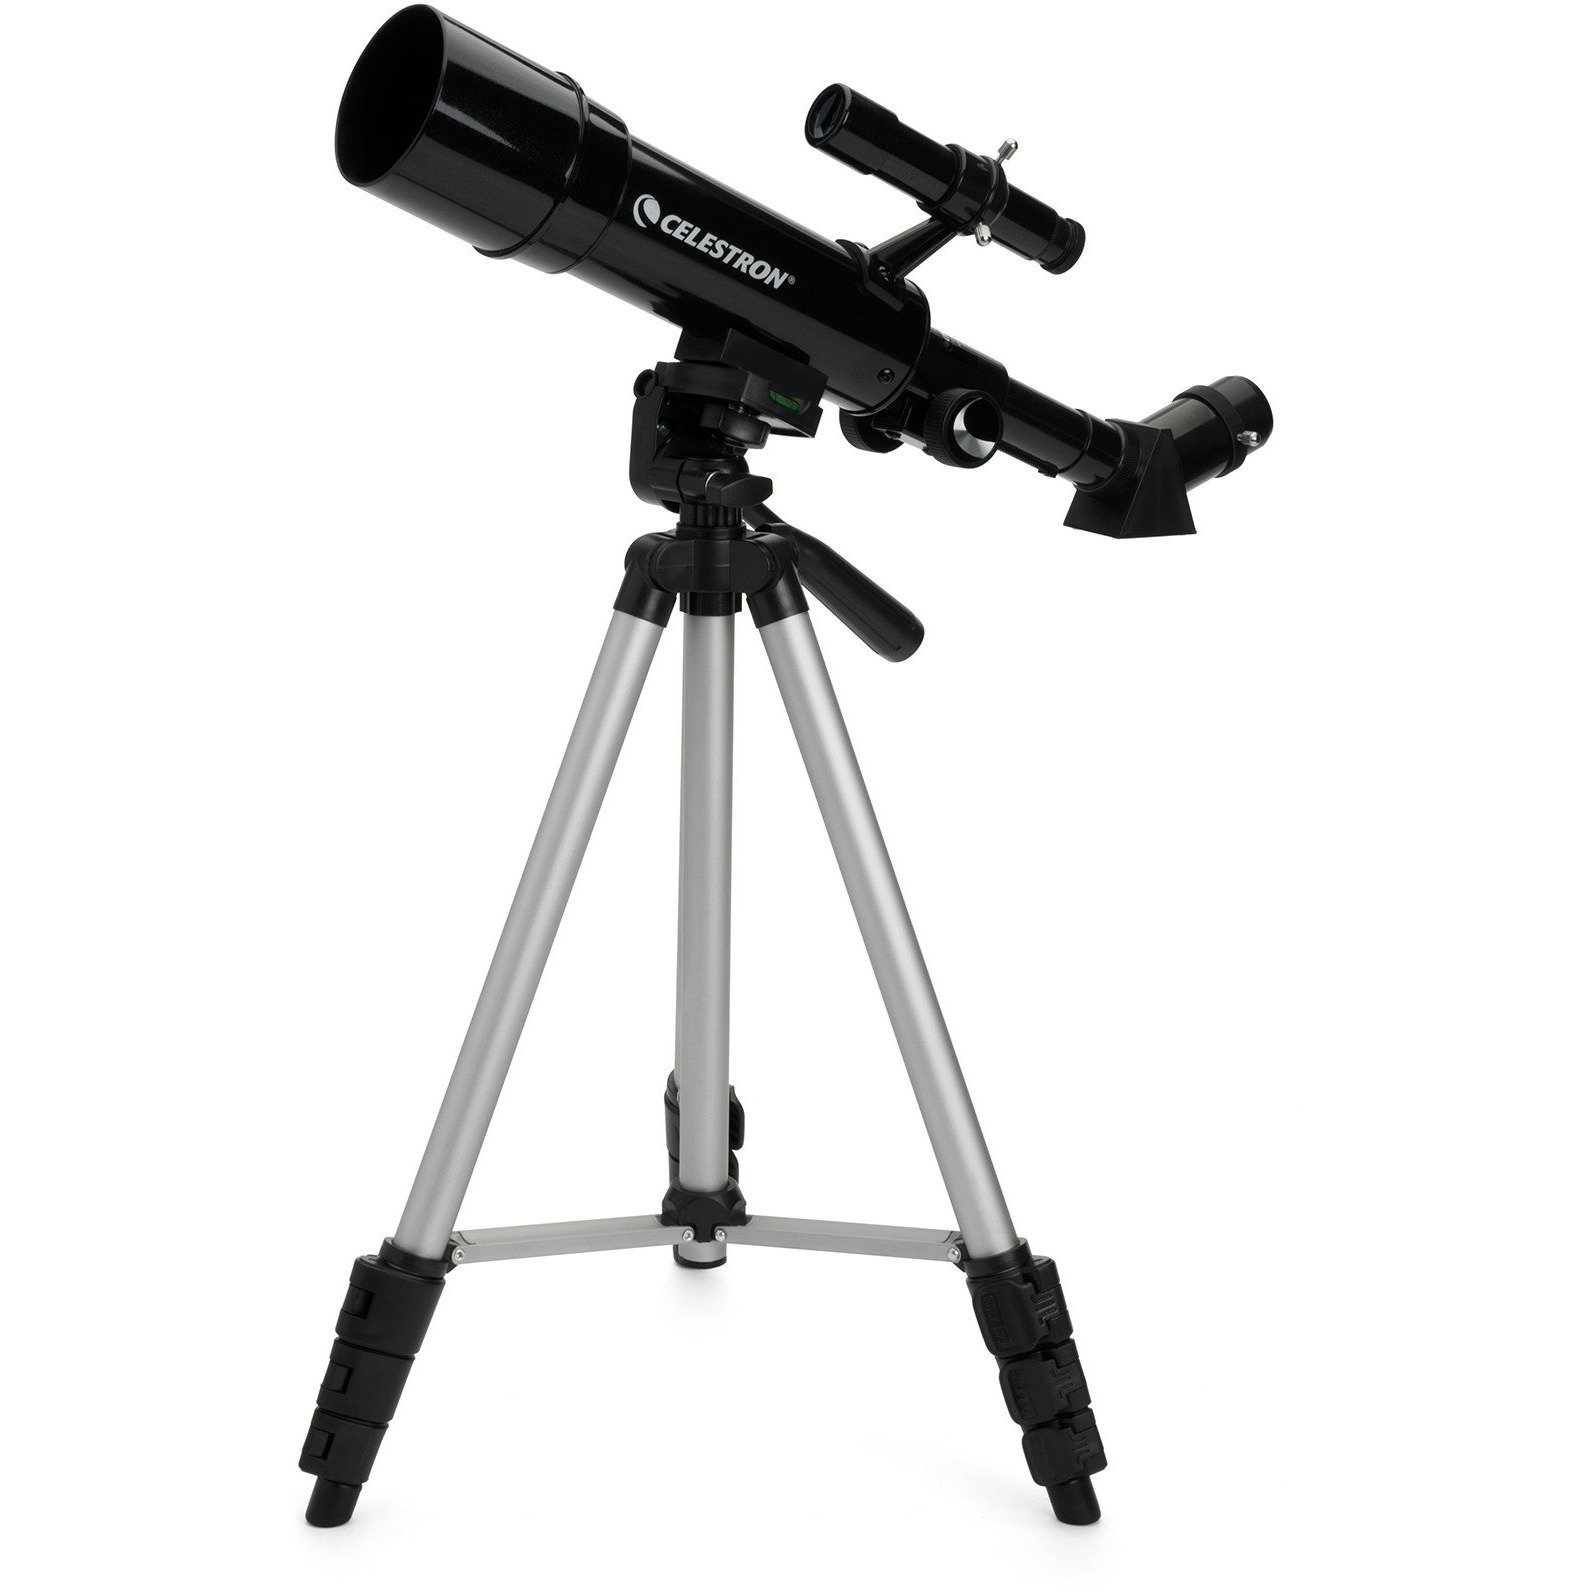 Celestron Travel Scope 50 Review Cover